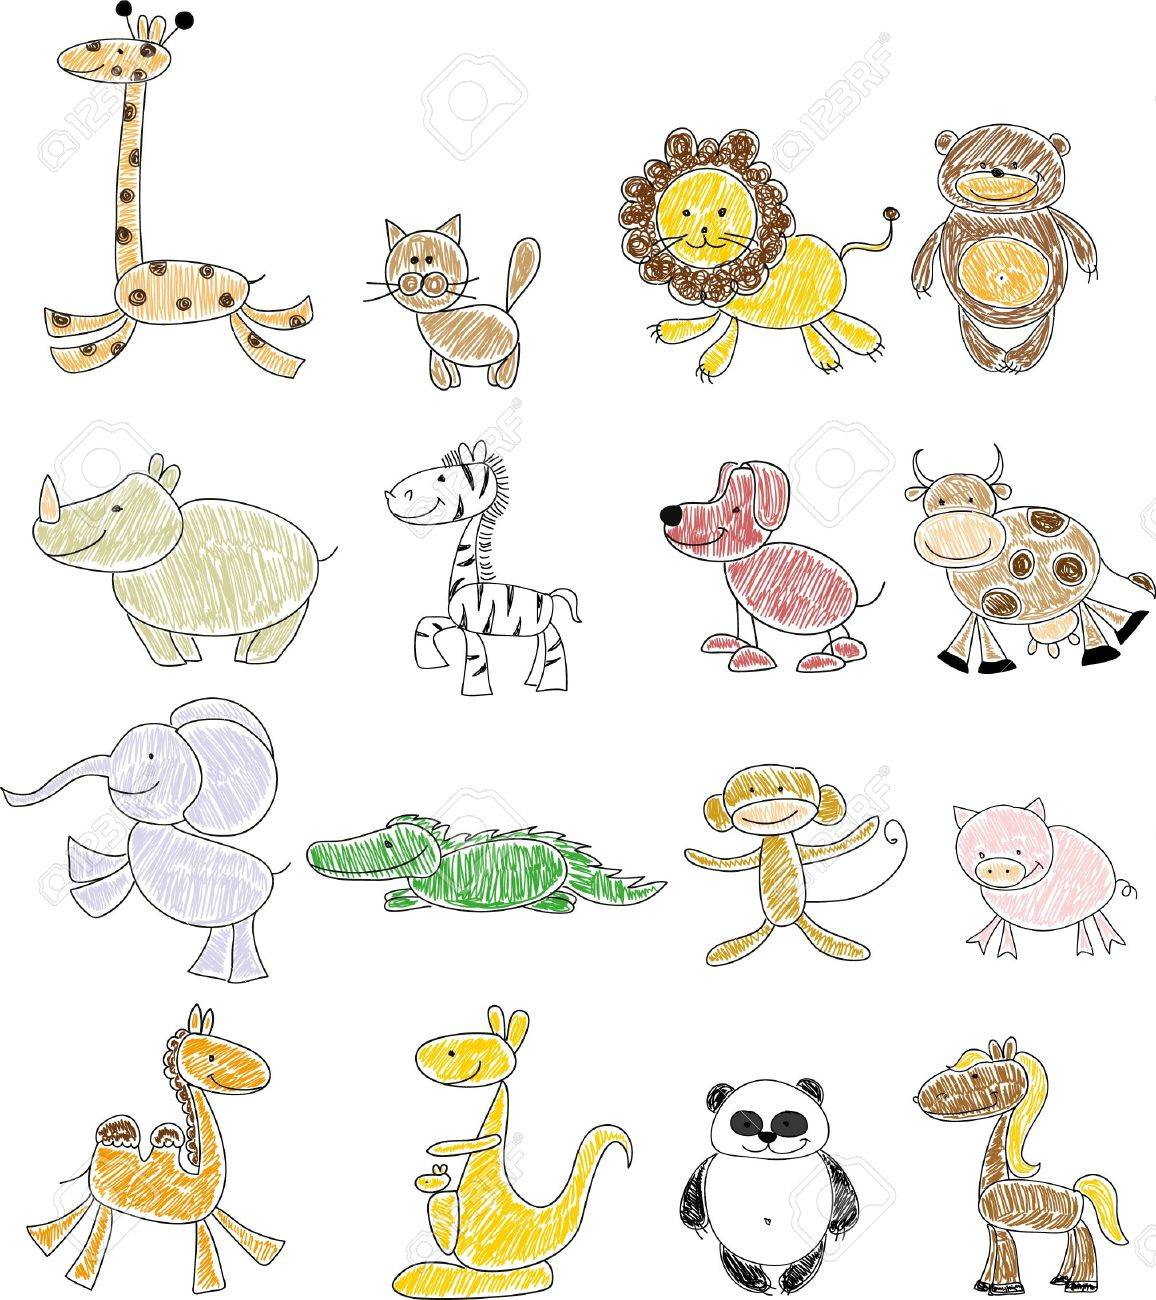 Animal drawings for children - Children S Drawings Of Doodle Animals Stock Vector 35099502